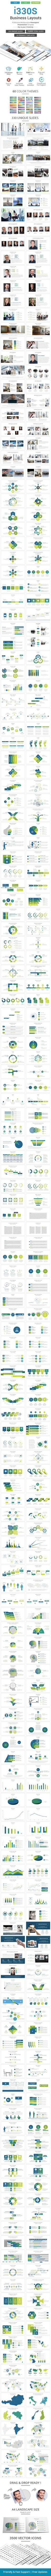 i330S Business Layouts PowerPoint Presentation Template  #swot analysis #diagram…